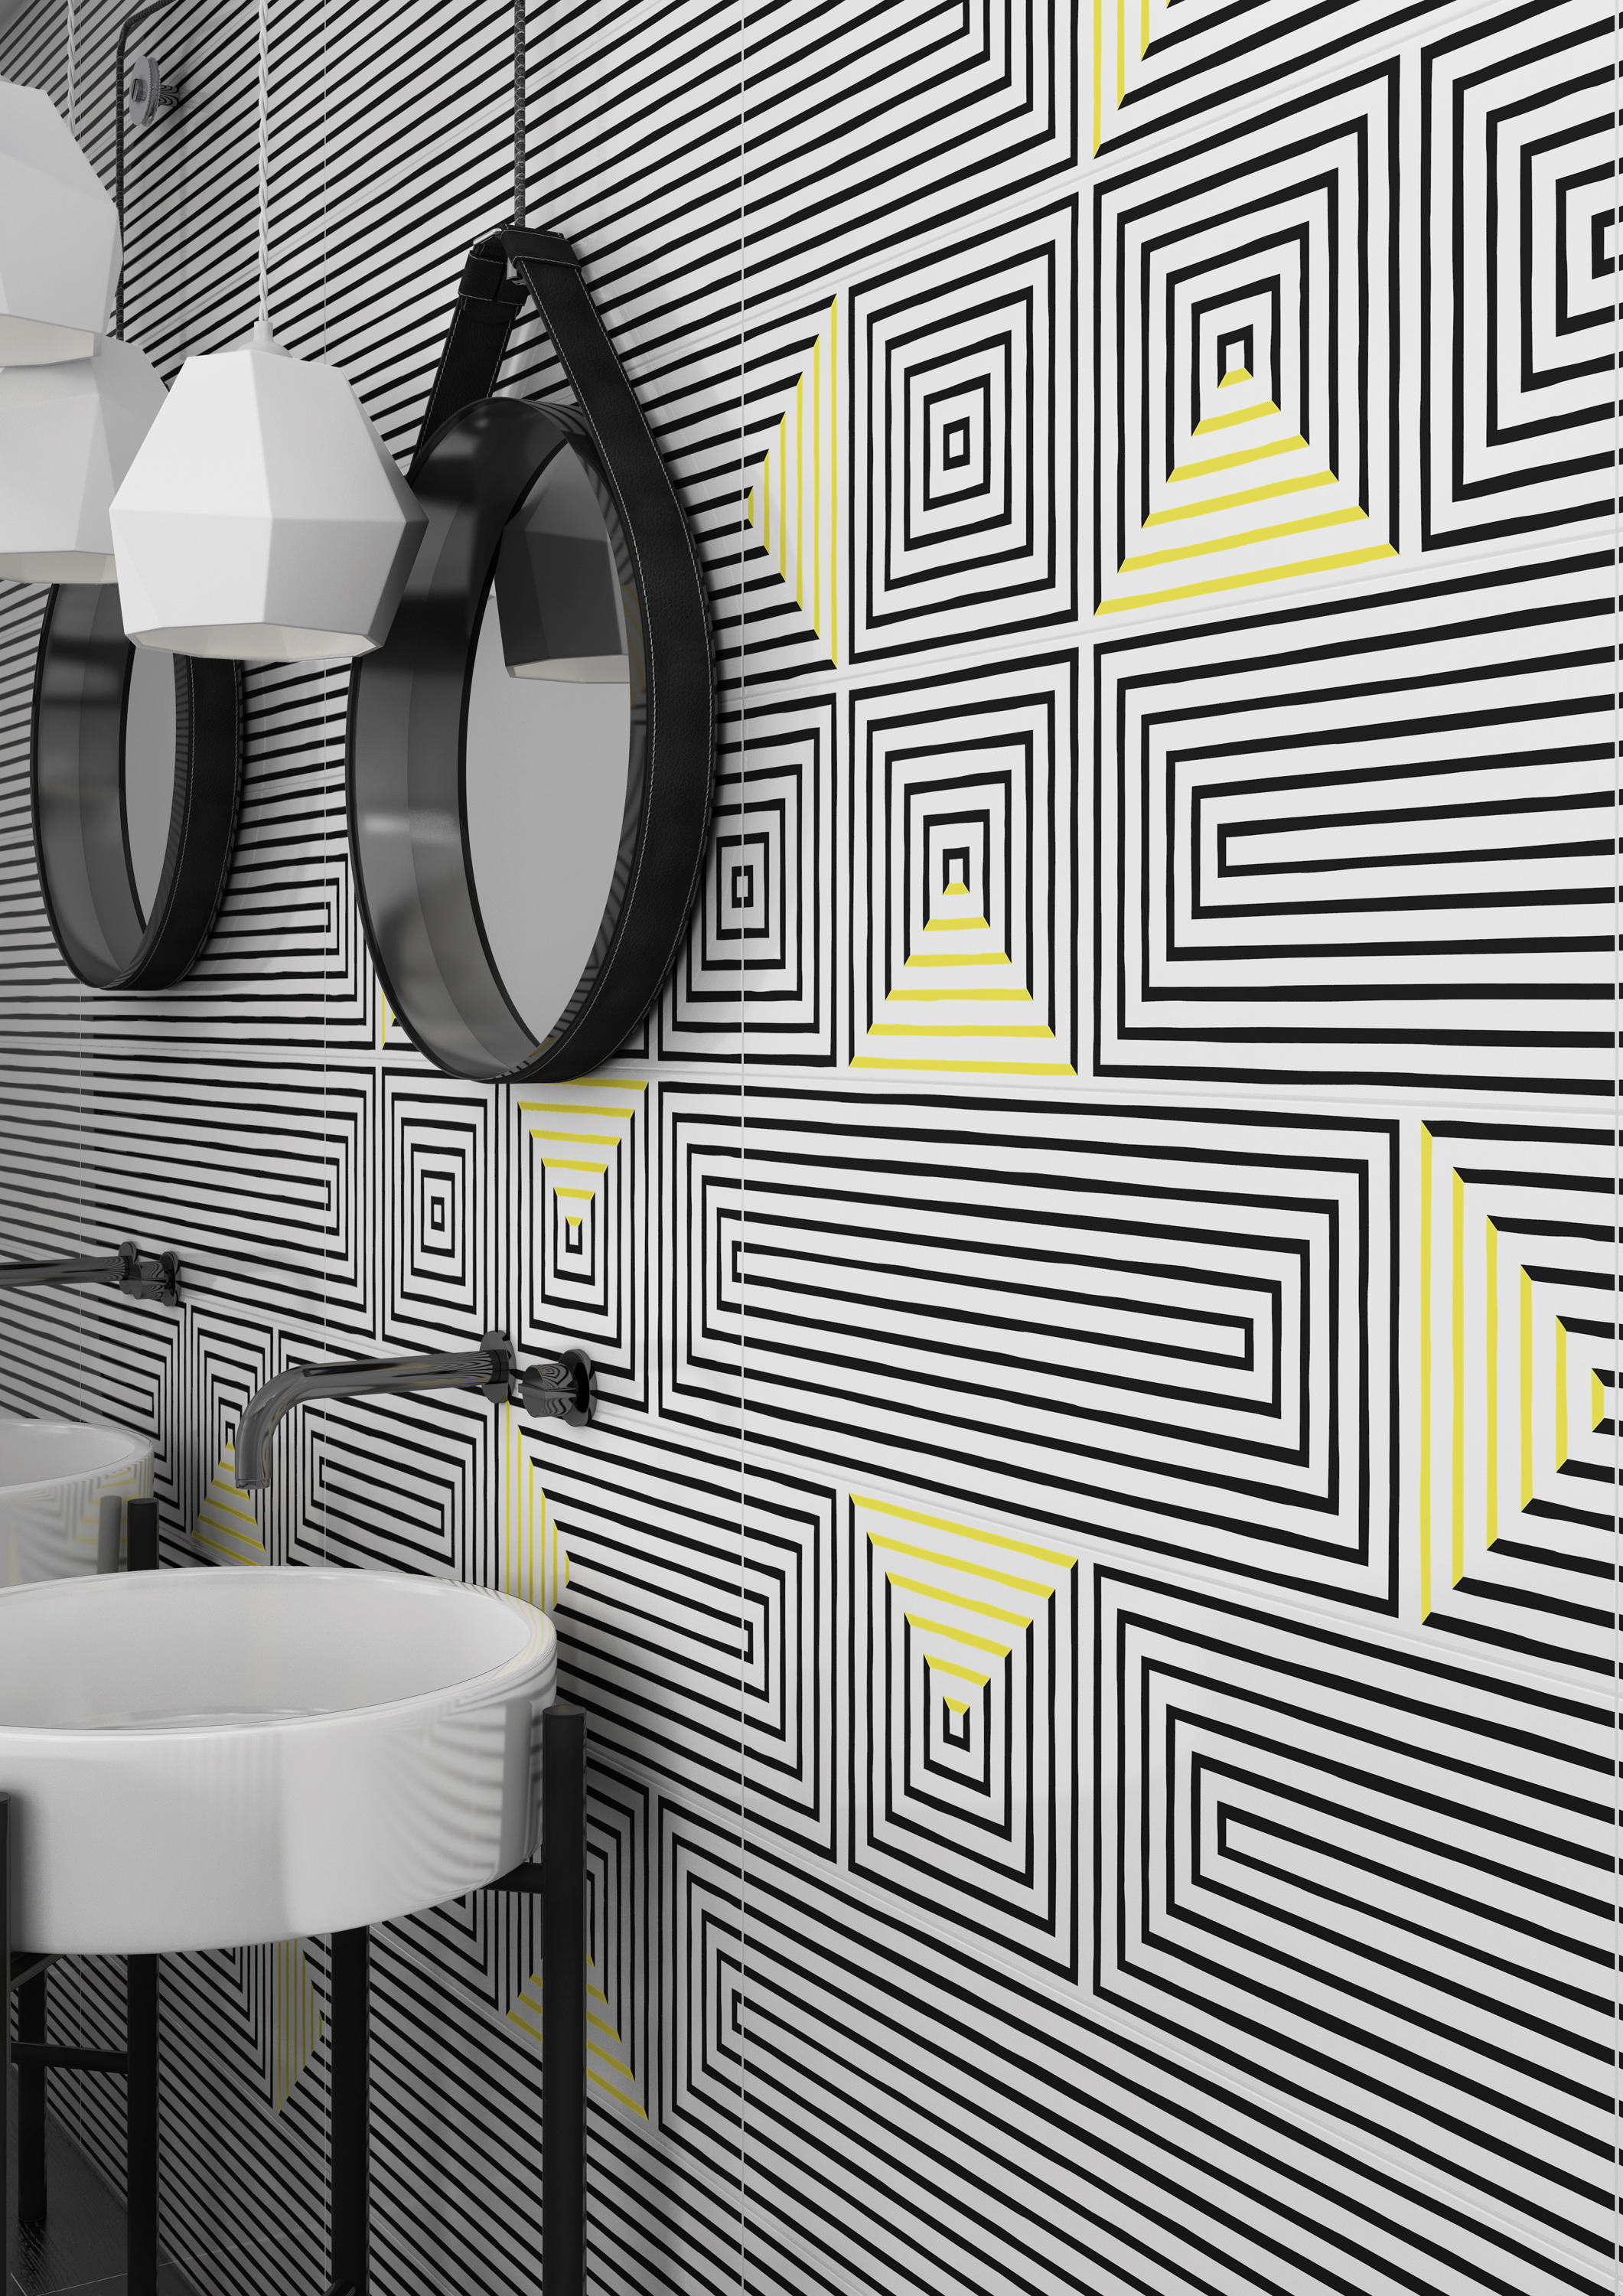 Asaro lima ceramic tiles from vives cermica architonic asaro lima by vives cermica asaro lima by vives cermica dailygadgetfo Choice Image